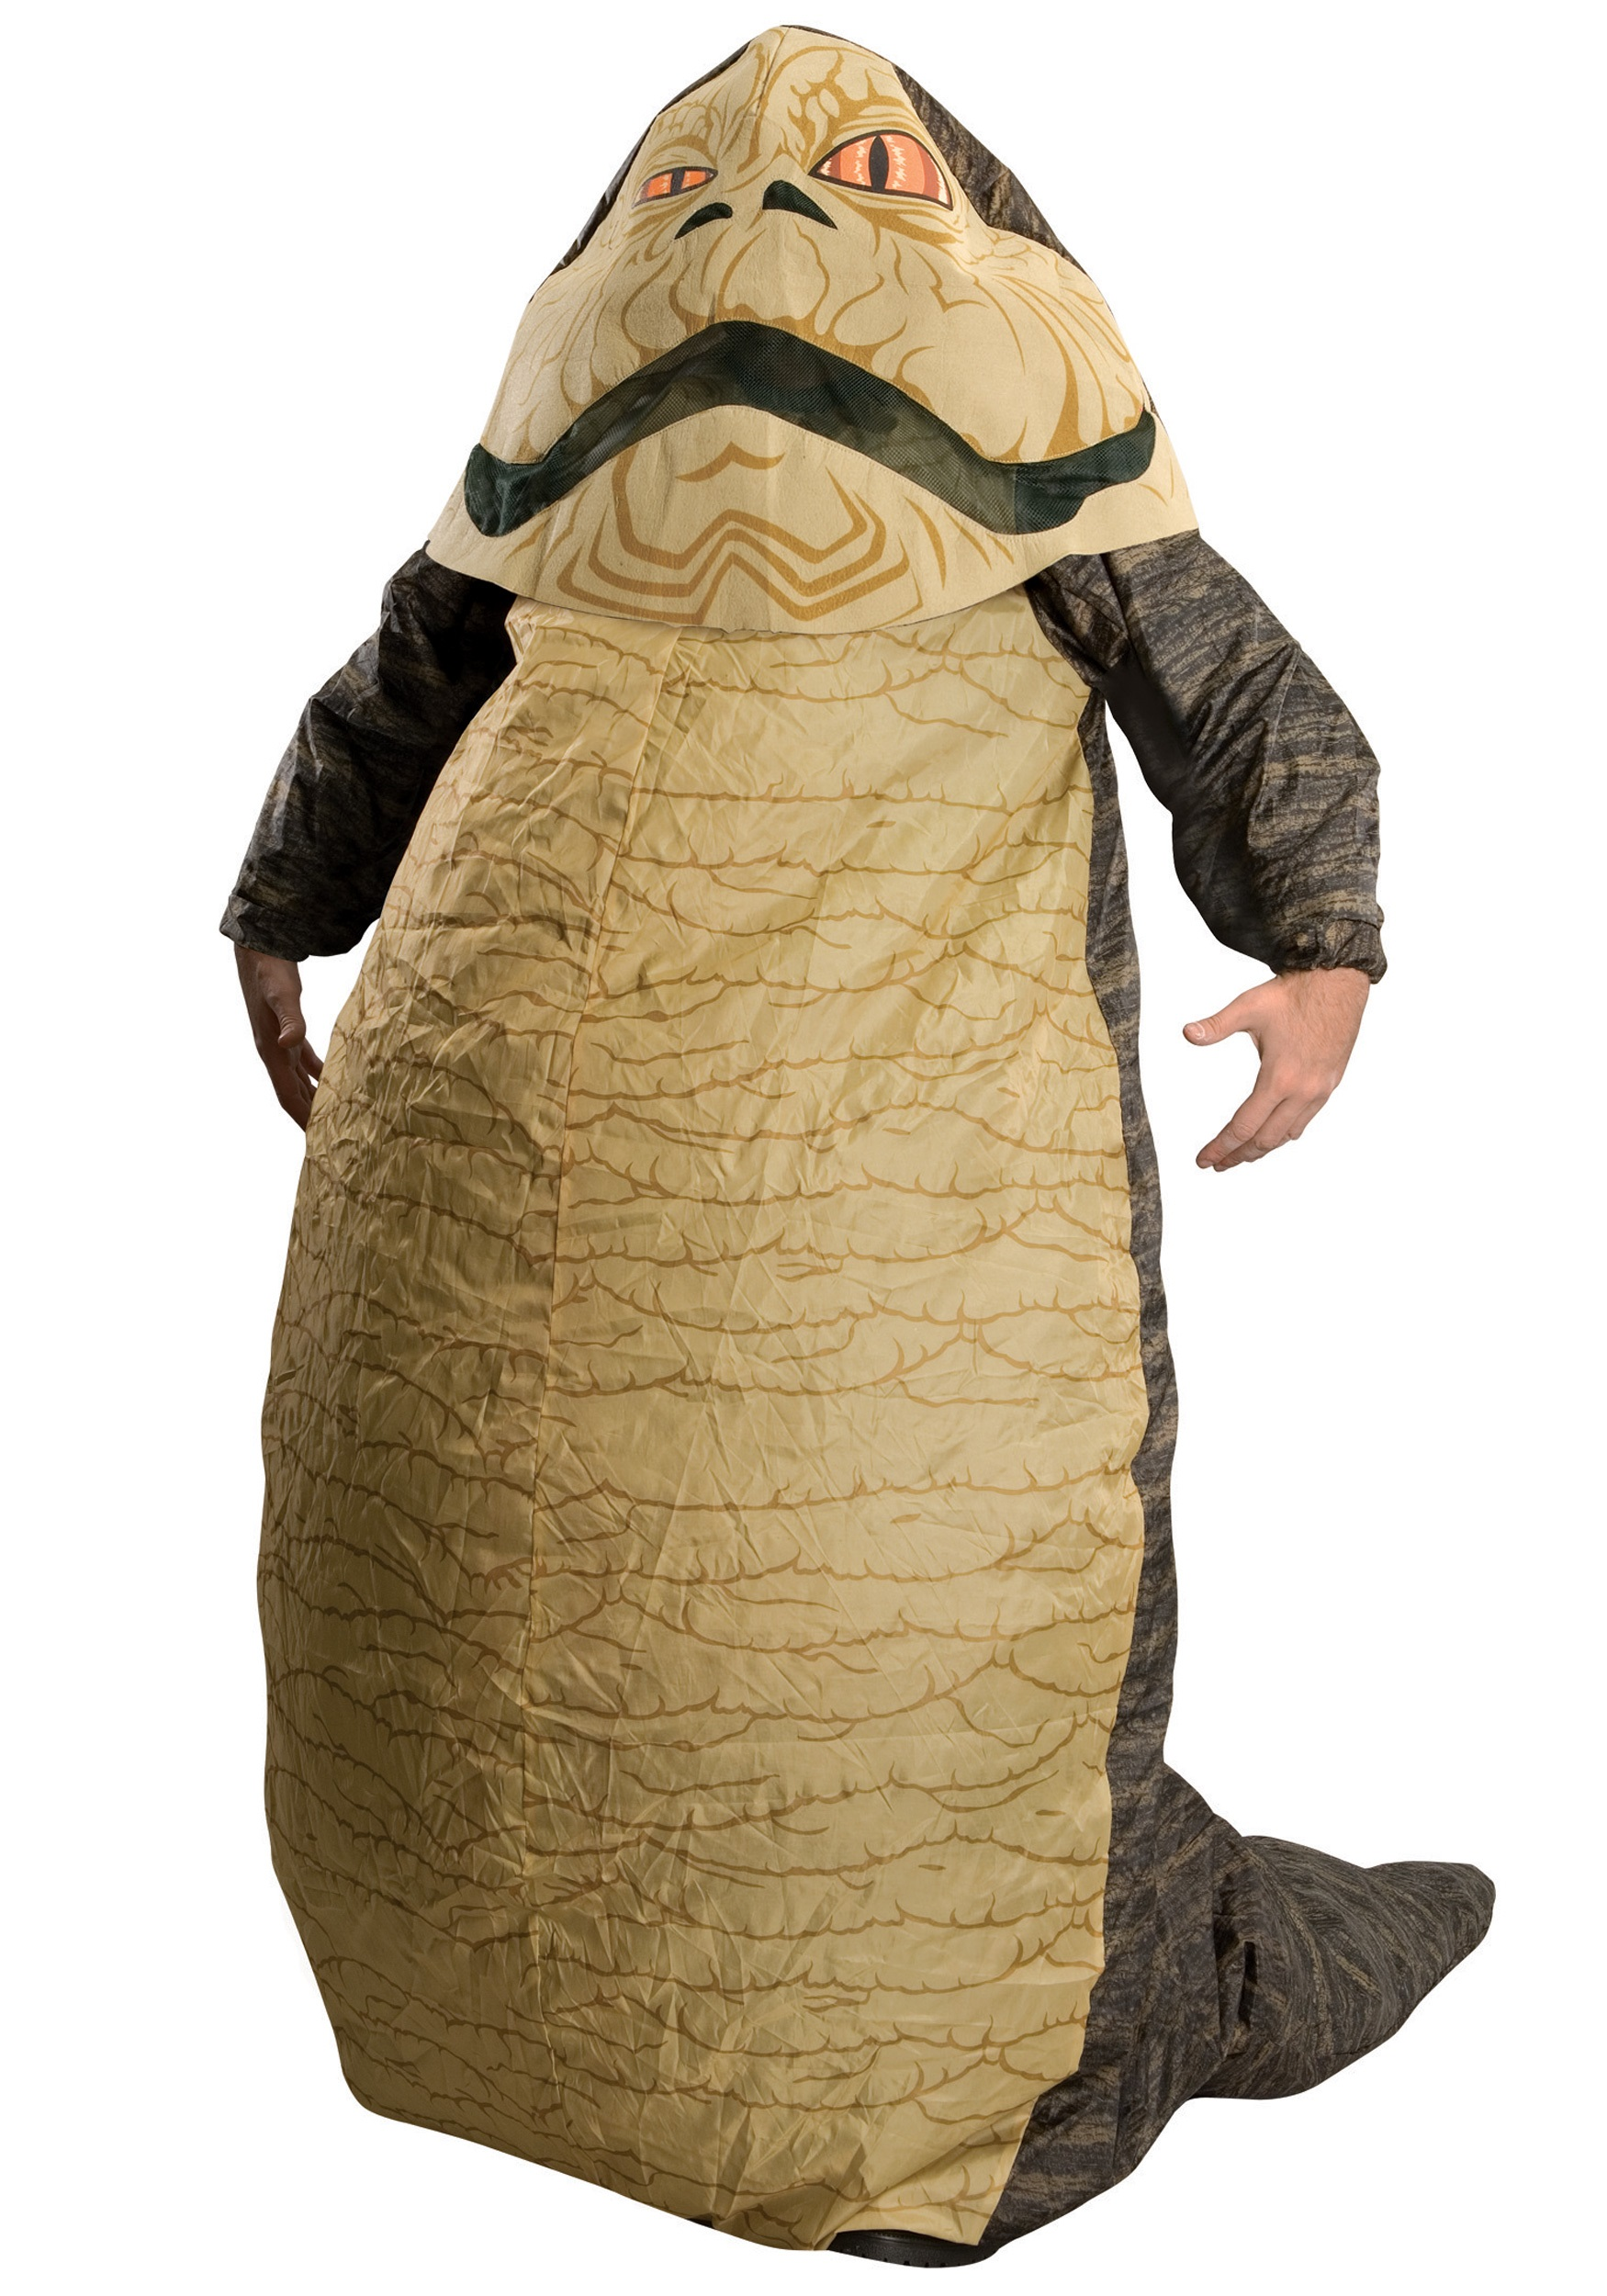 Jabba costume  sc 1 st  Cavalcade of Awesome & Hilariously Inappropriate Star Wars items | Cavalcade of Awesome